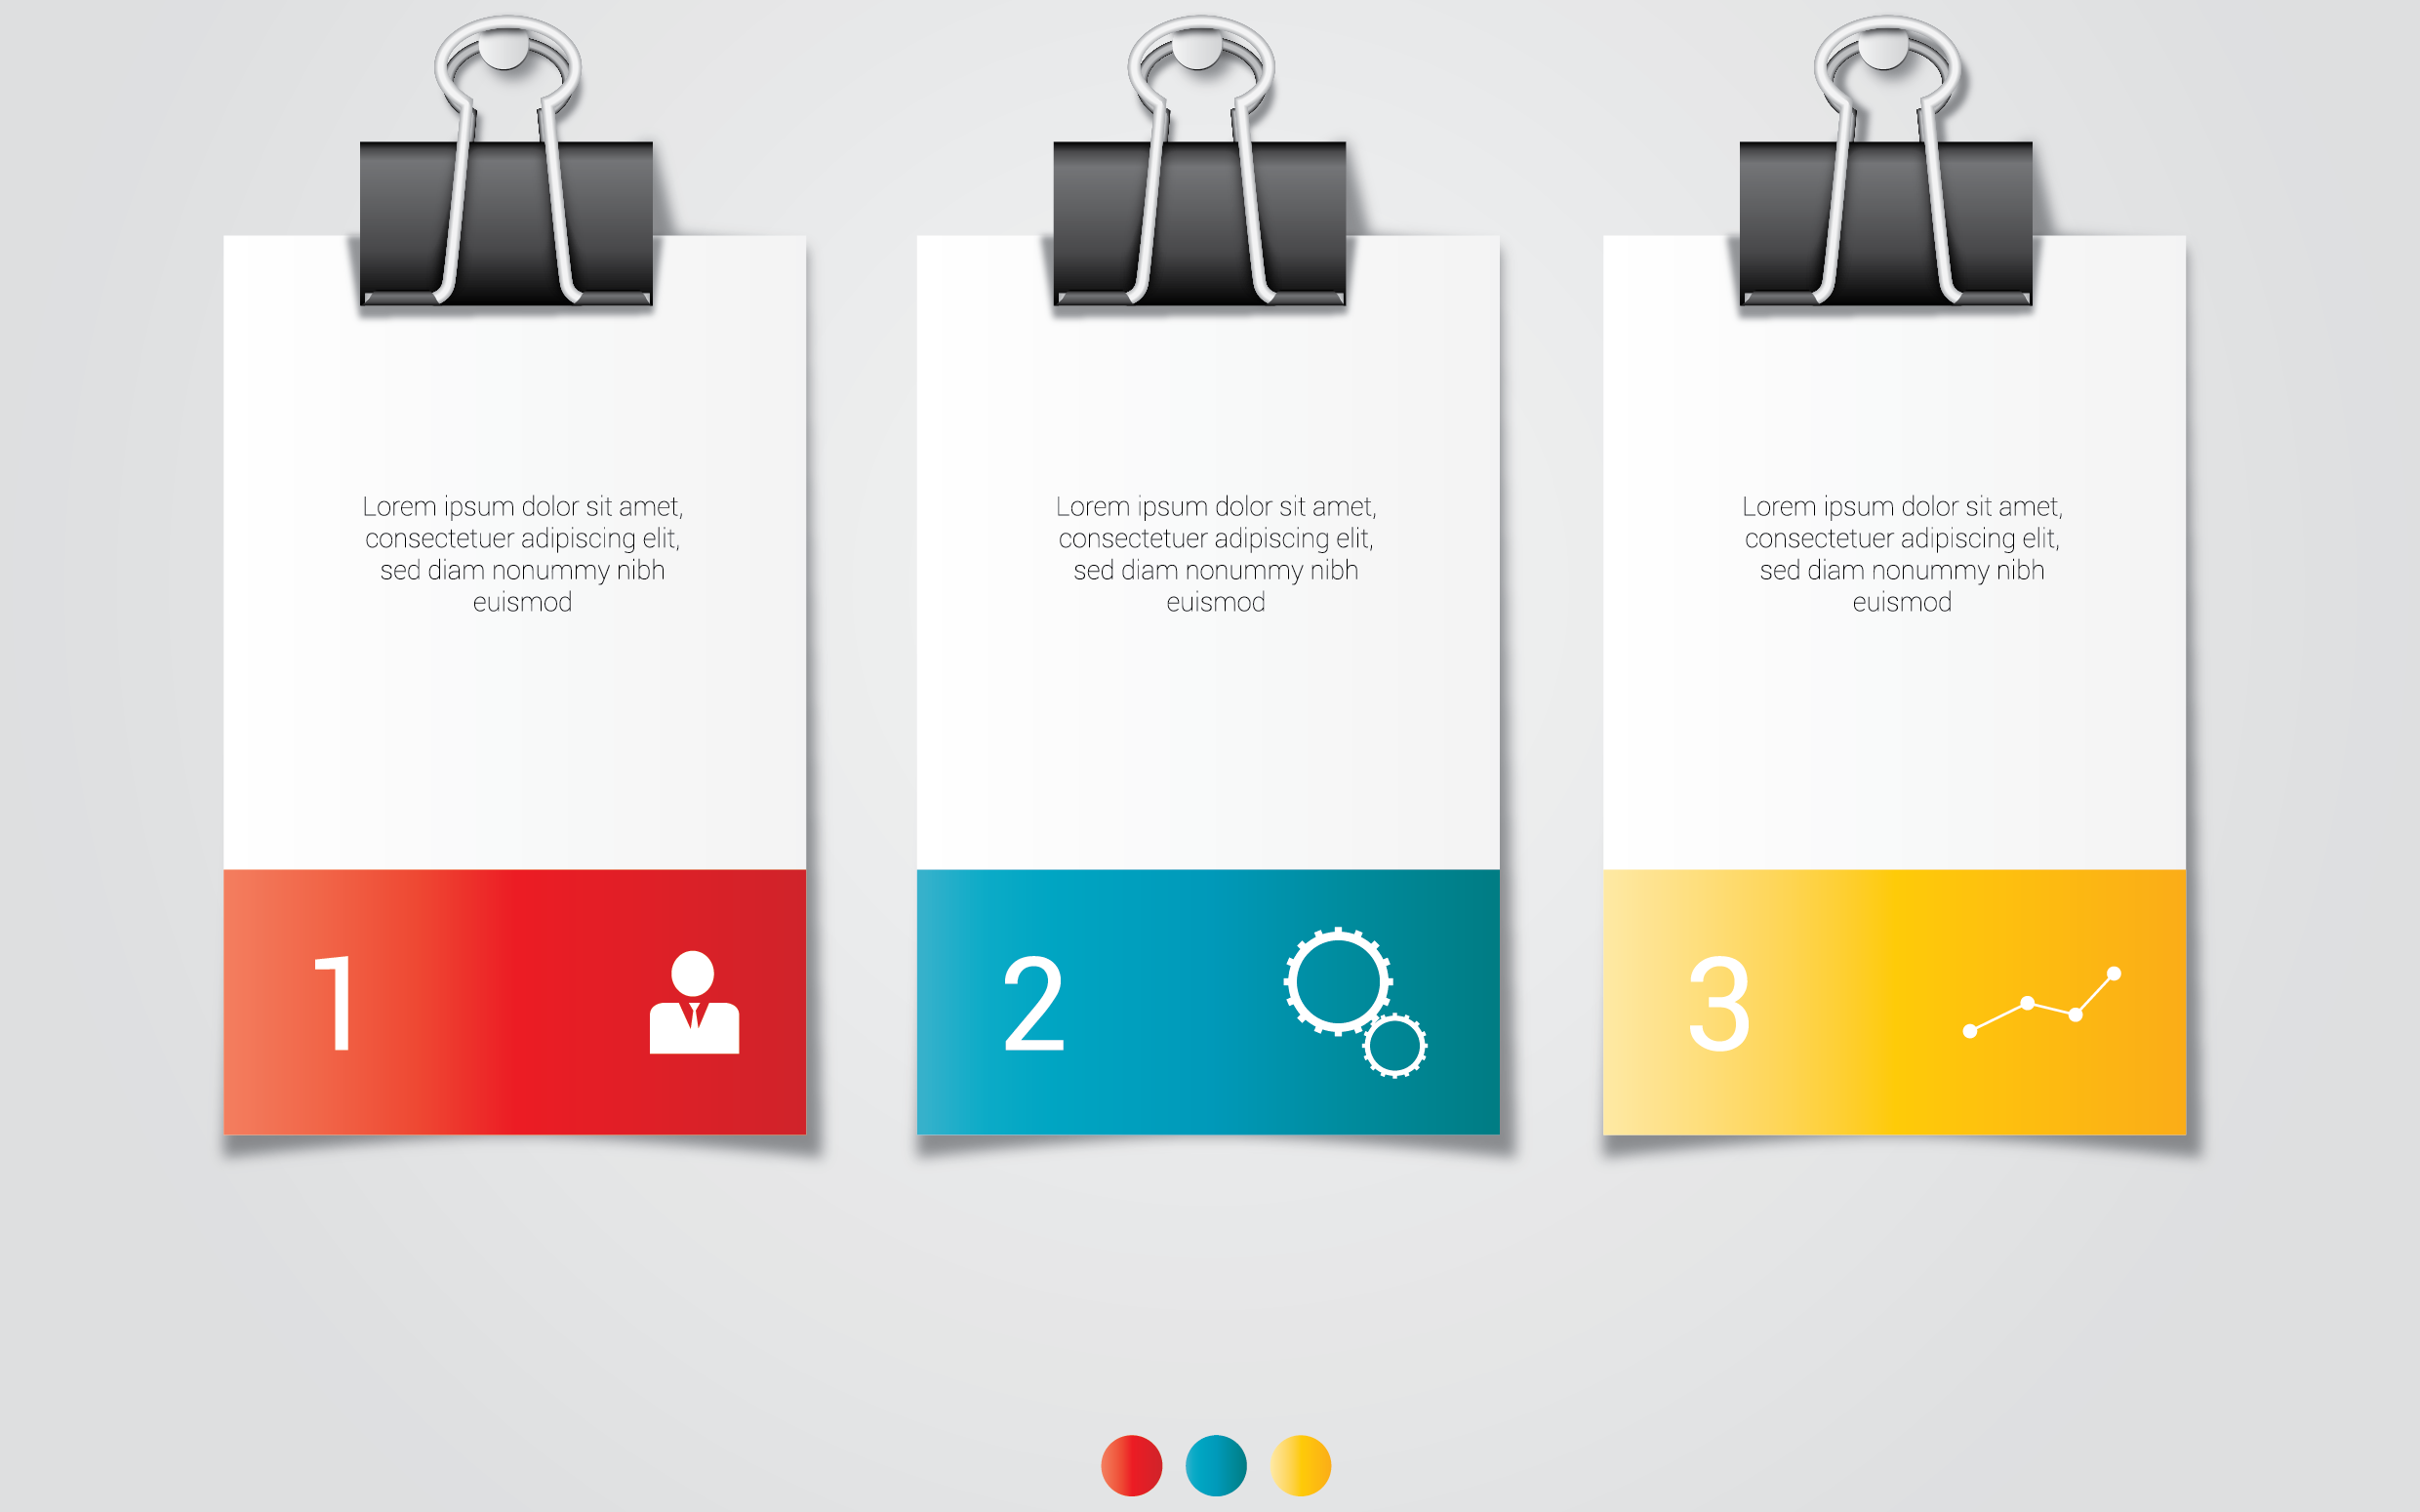 Minimal text and clear layout make infographics simple and easy to understand.